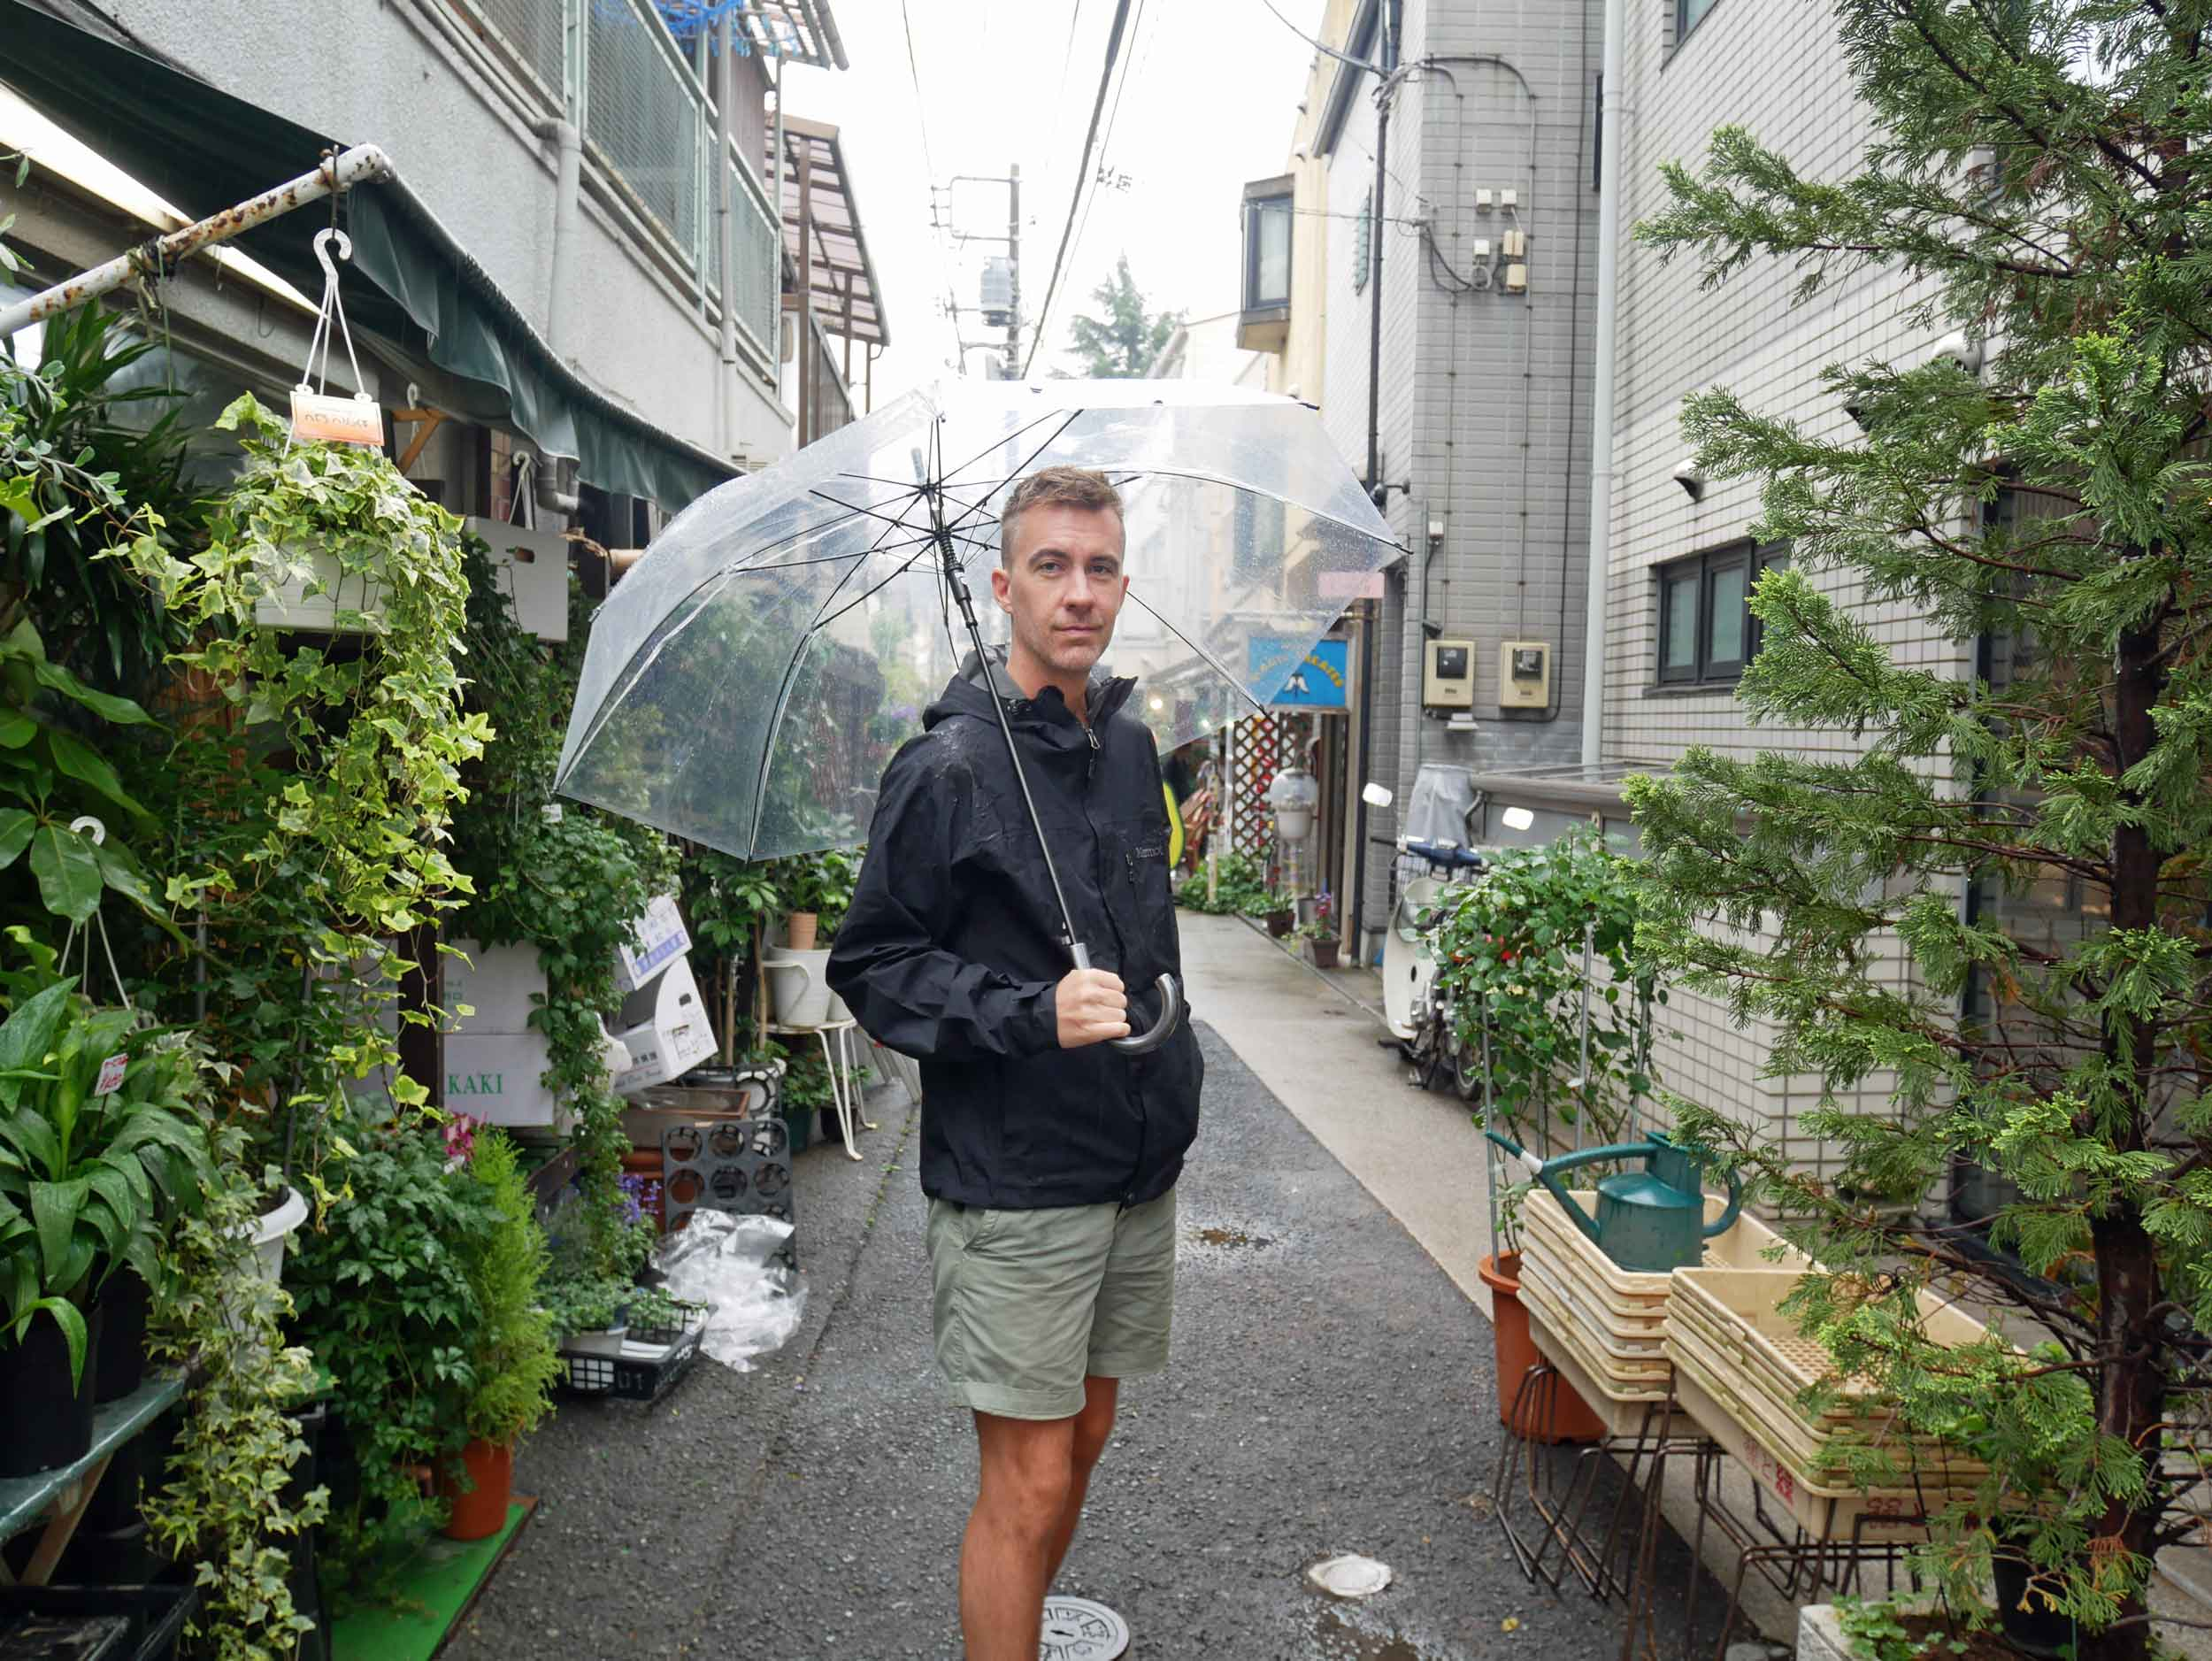 As the rain began to come down, clear umbrellas appeared all across town, so we had to get a pair ourselves!